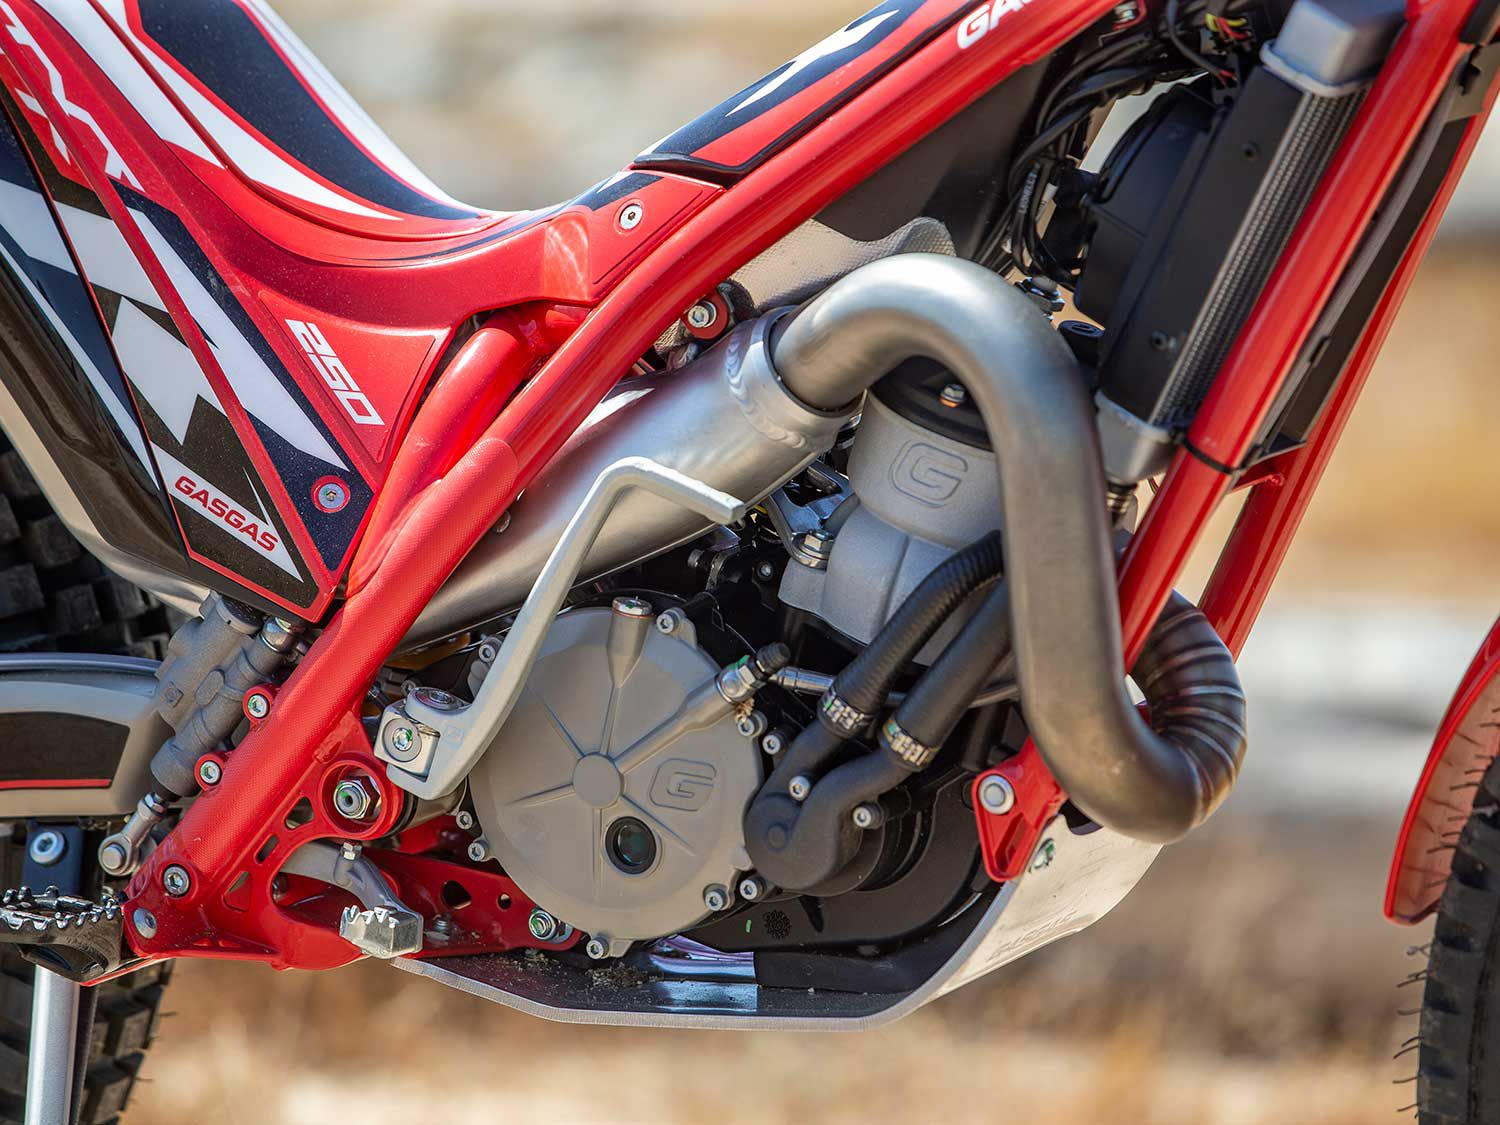 The TXT Racing 250 is powered by a 248cc liquid-cooled two-stroke single. A manual kickstarter and a twist of the throttle (it is carbureted) let the engine fire.